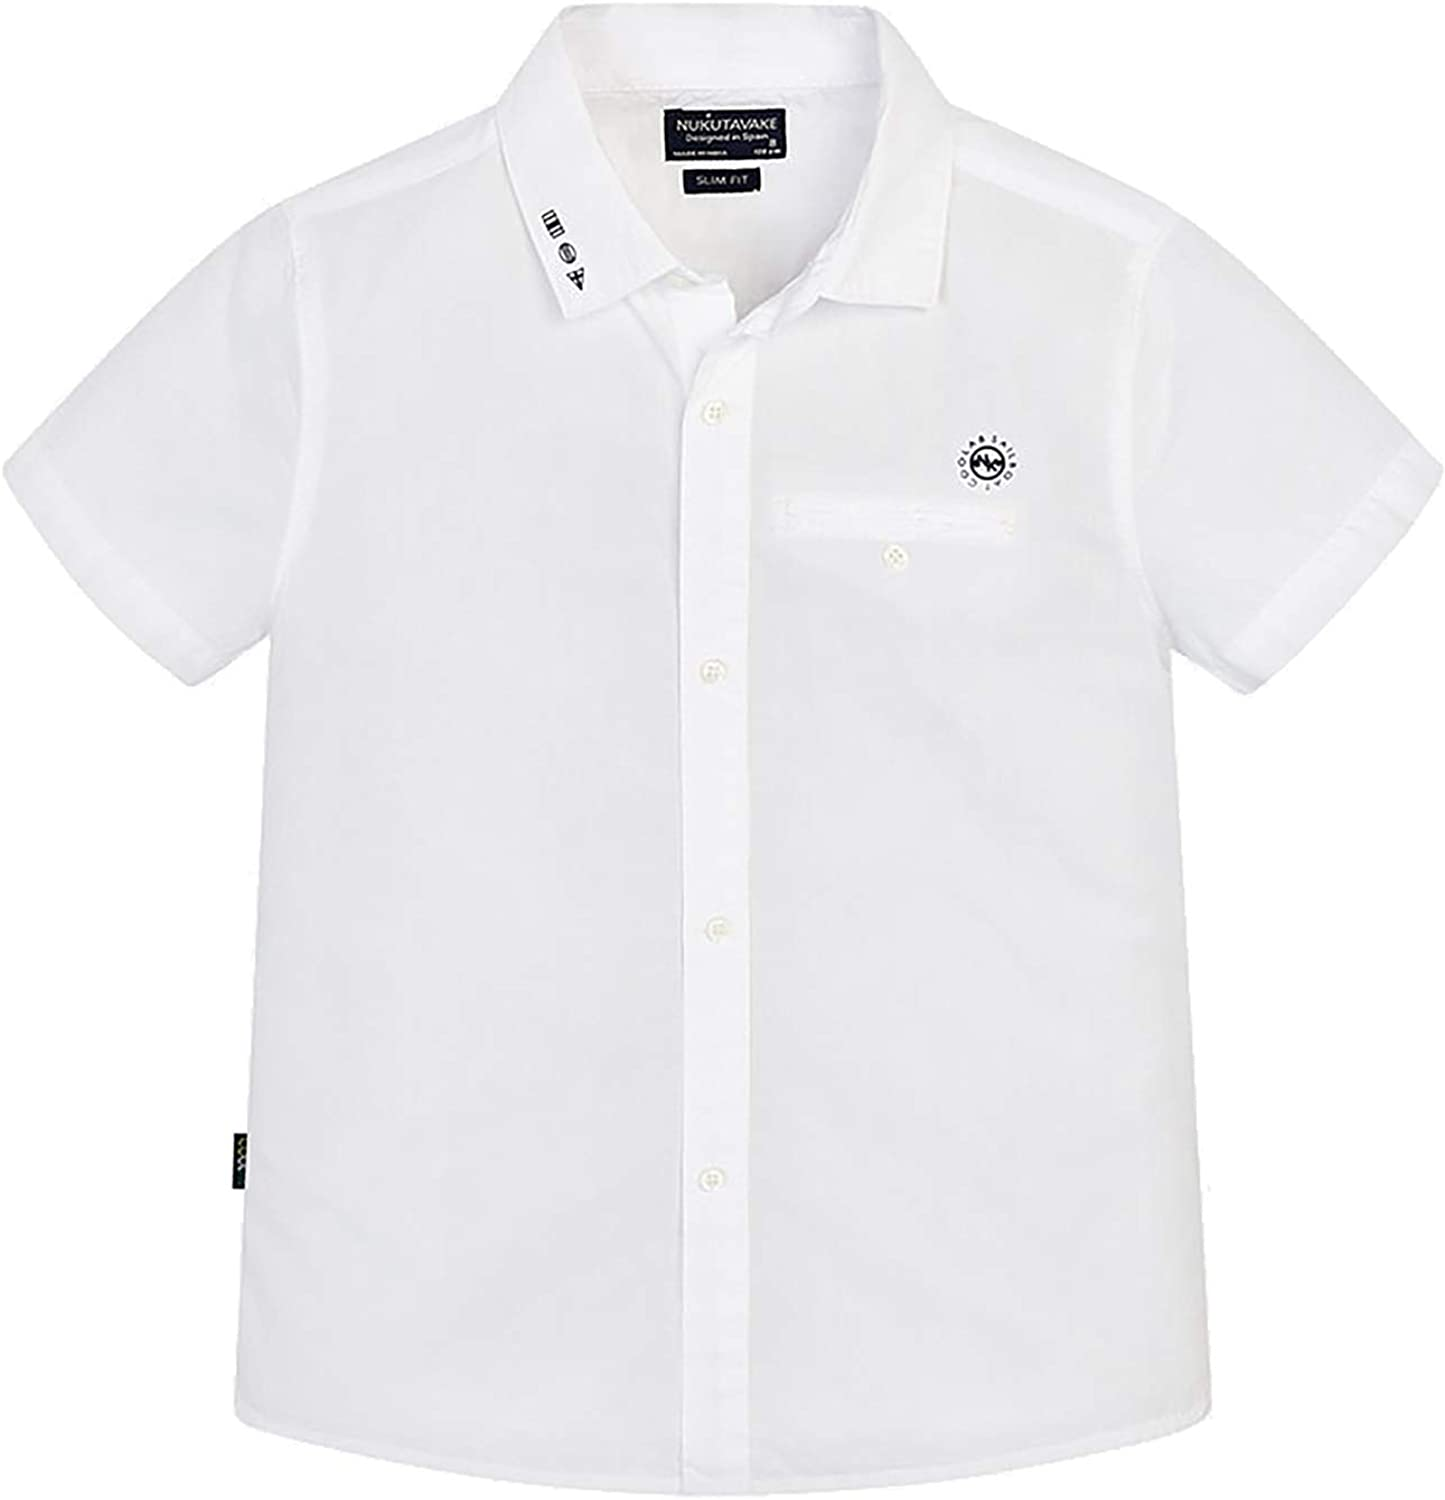 Mayoral - S/s Detail Shirt for Boys - 6124, White